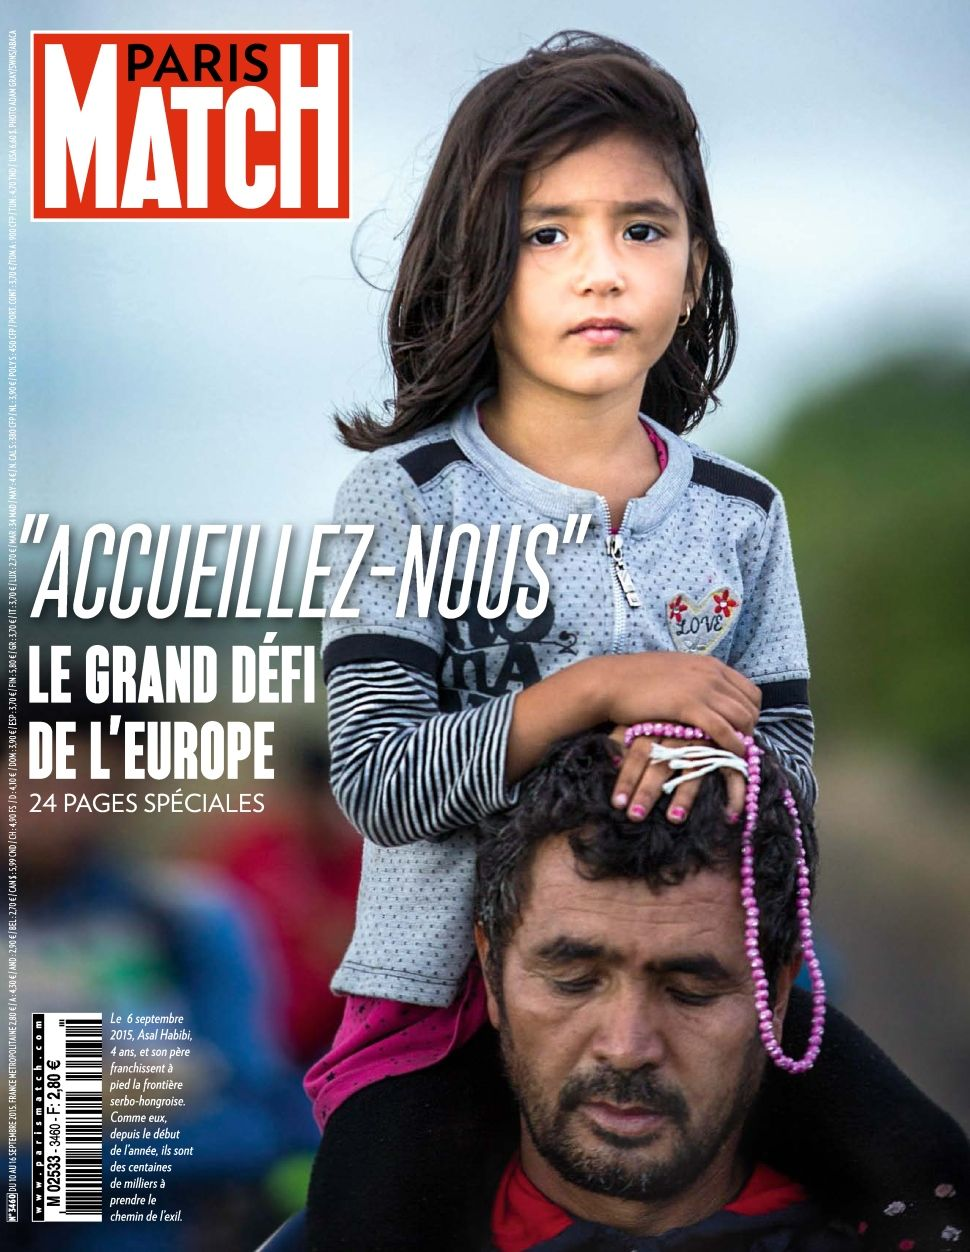 Paris Match 3460 - 10 au 16 Septembre 2015